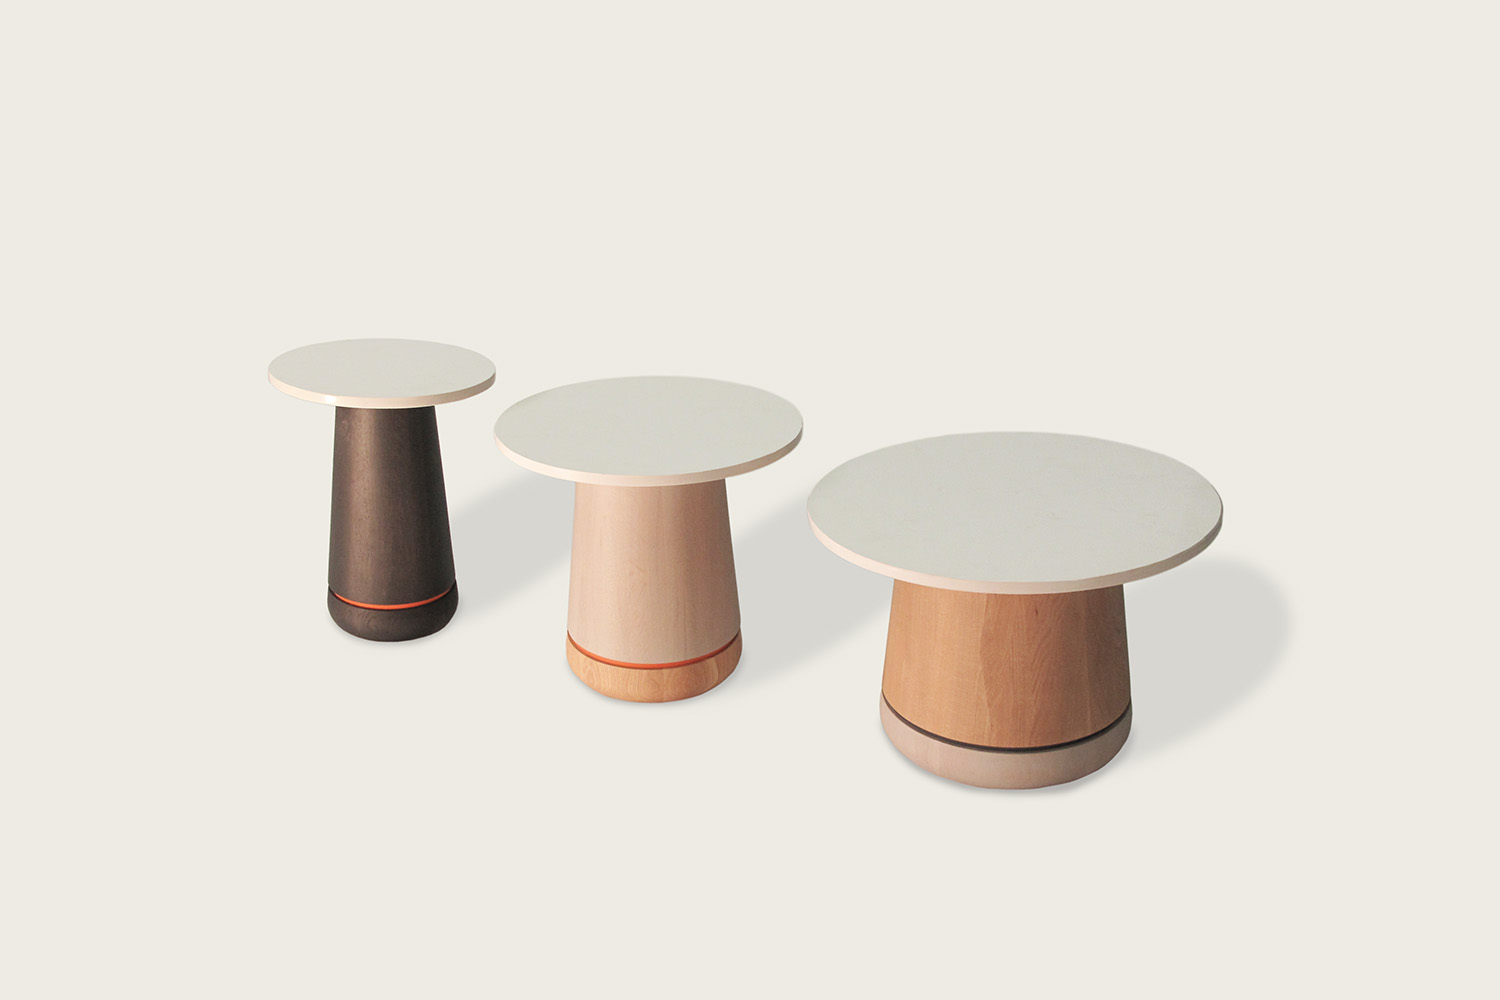 Phase Cocktail Tables in oak - Speke Klein